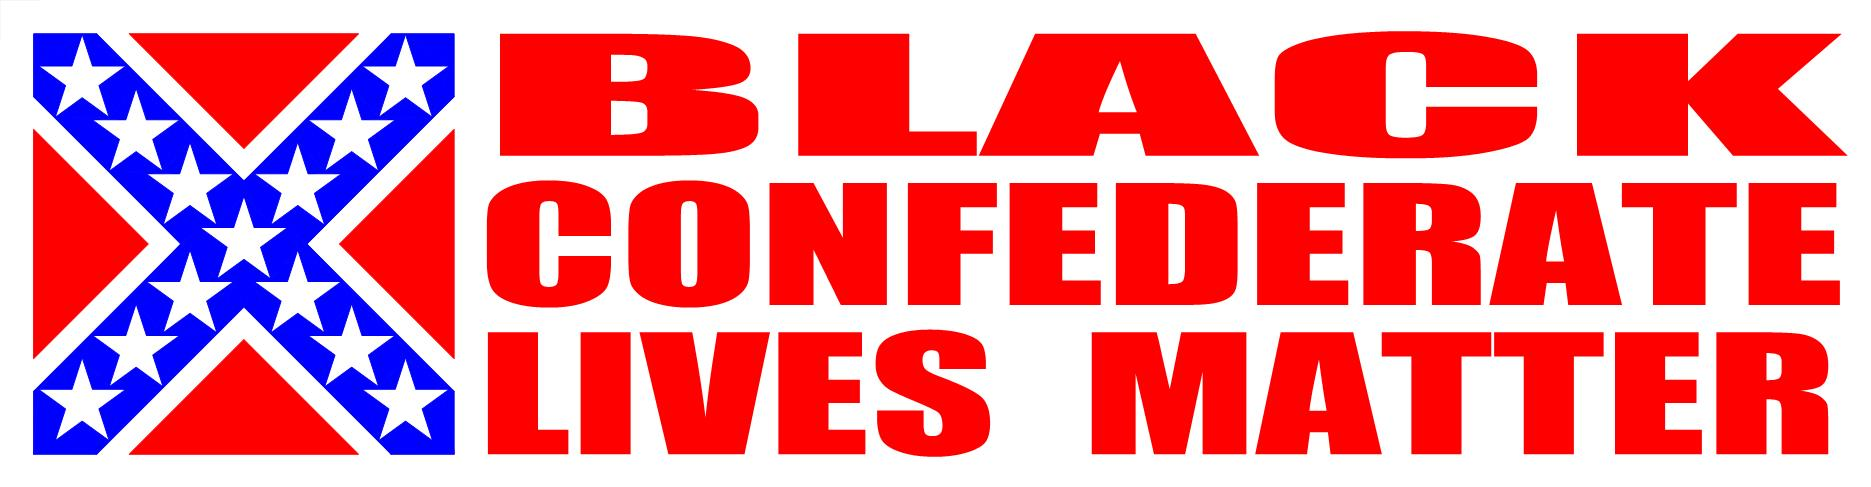 Black Confederate Matter